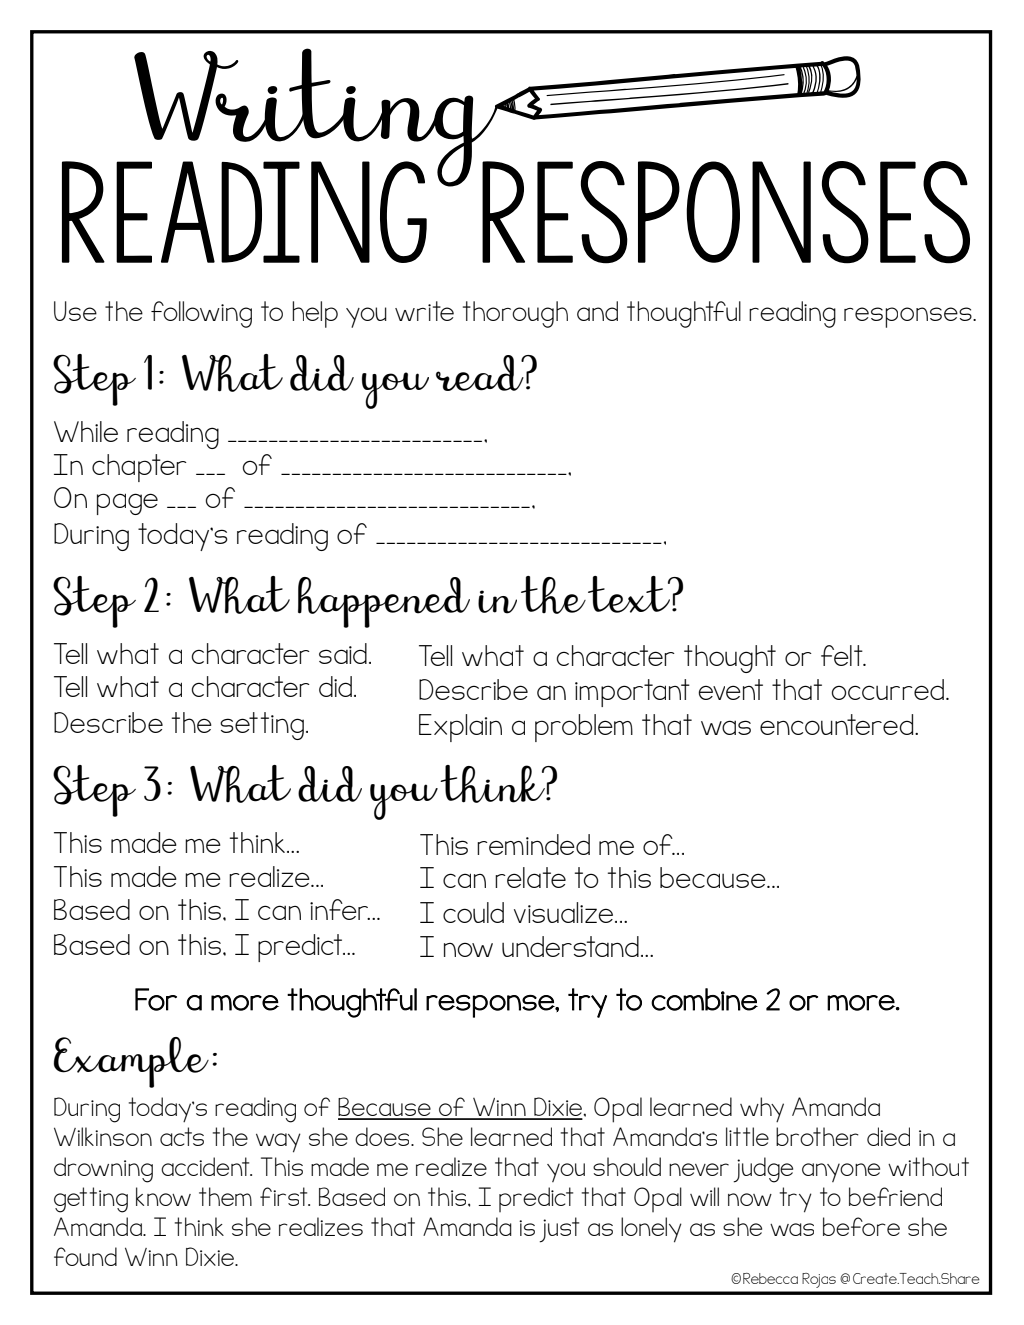 Writing Reading Responses